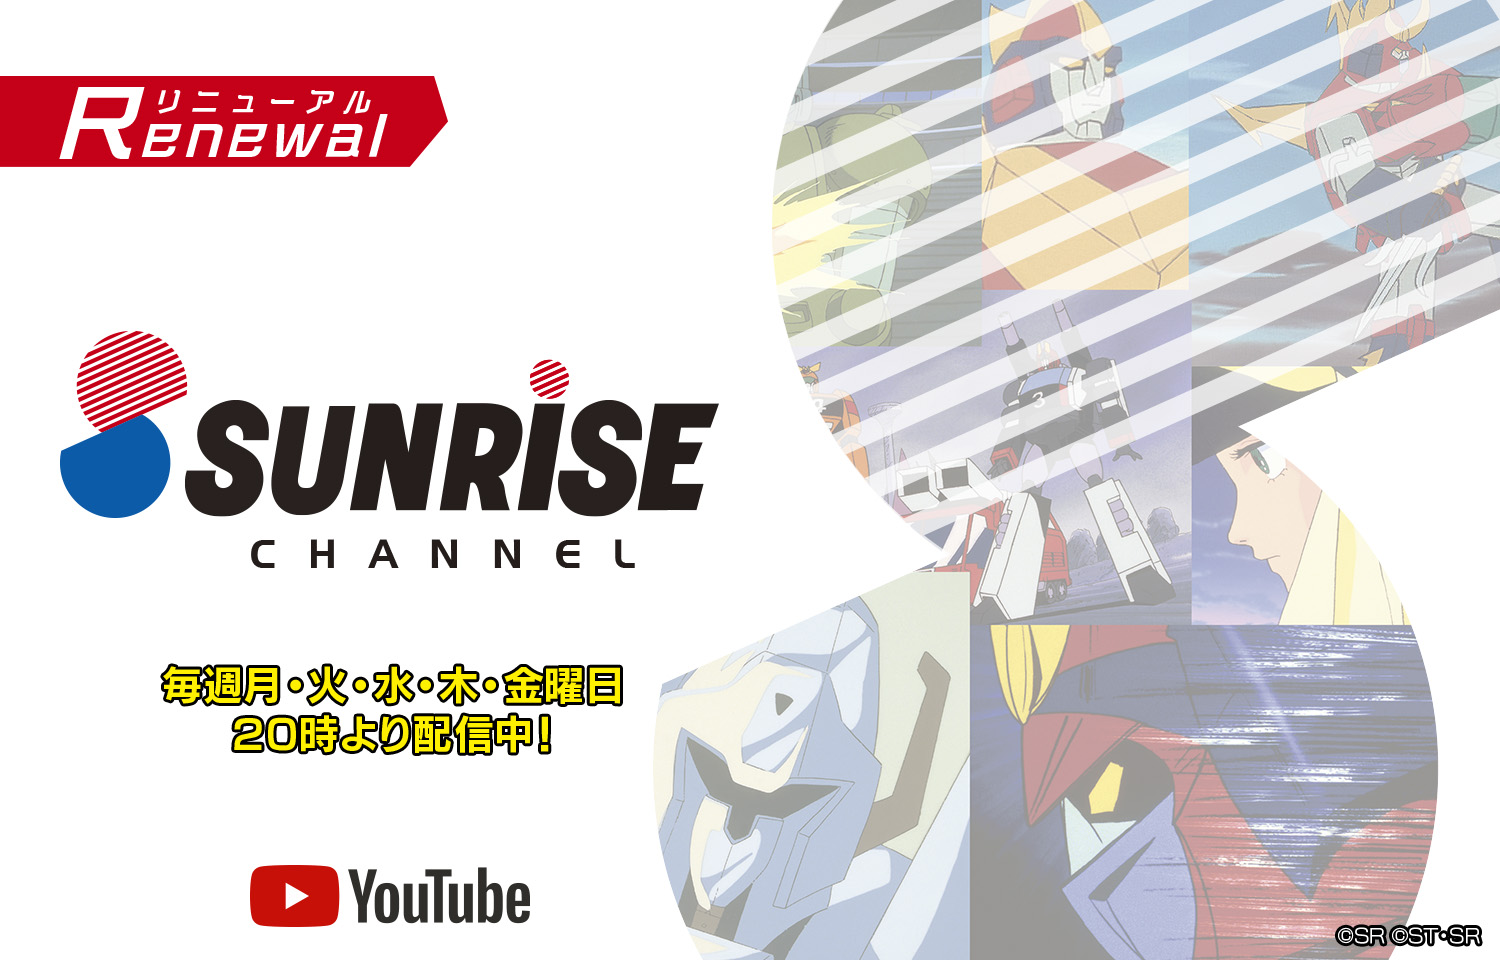 SUNRISE CHANNEL